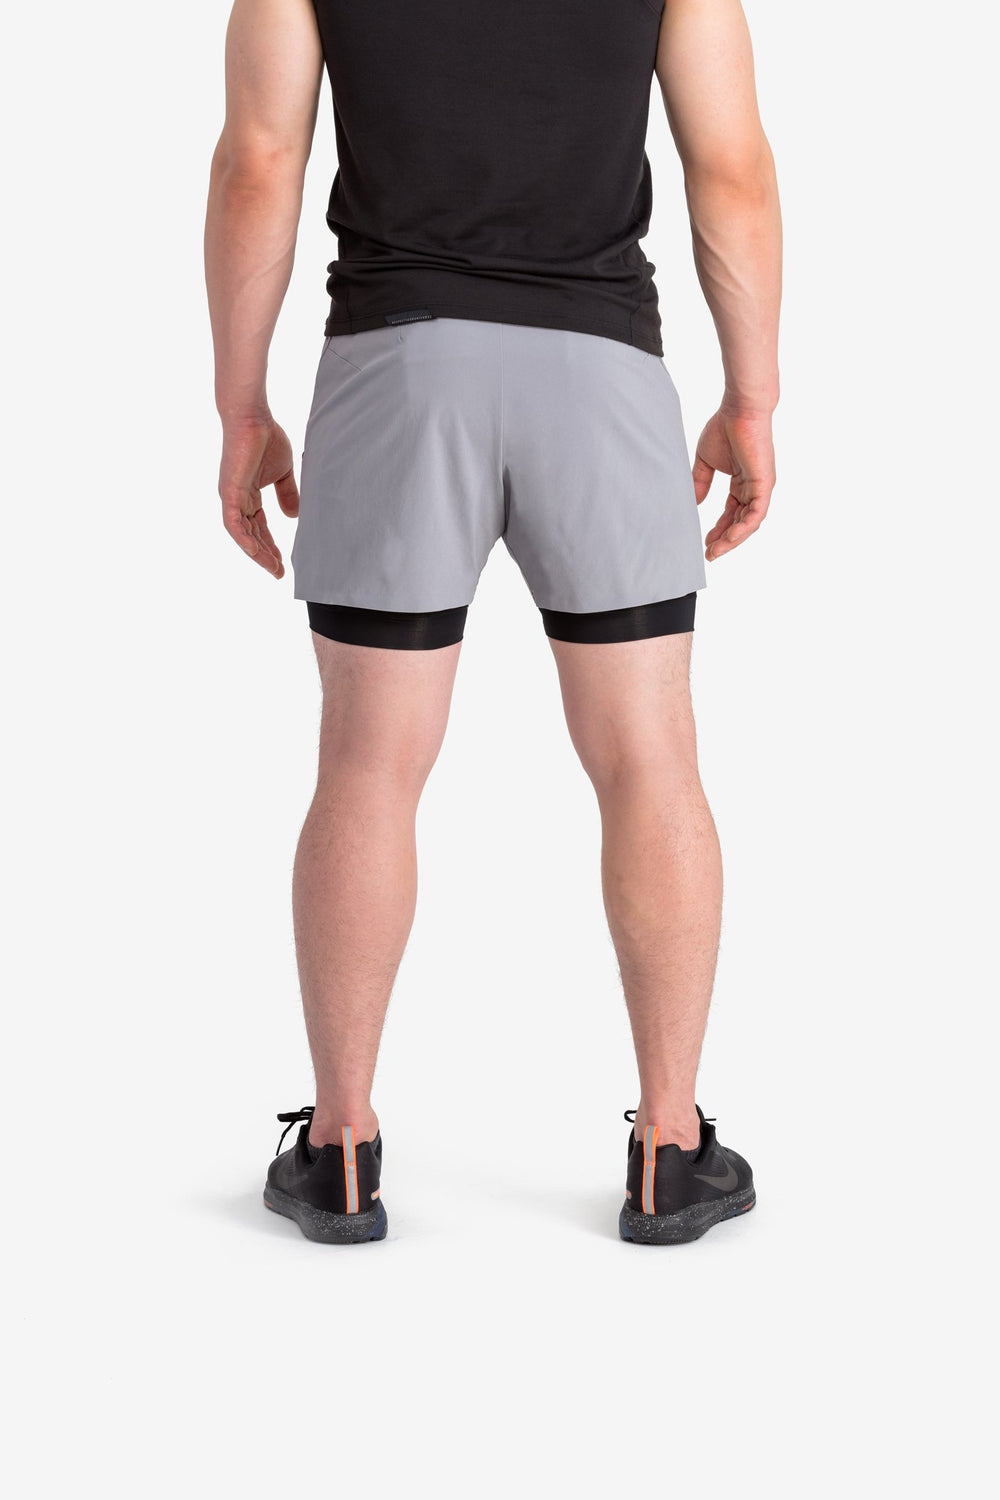 RYU Mens Vector Short in Black